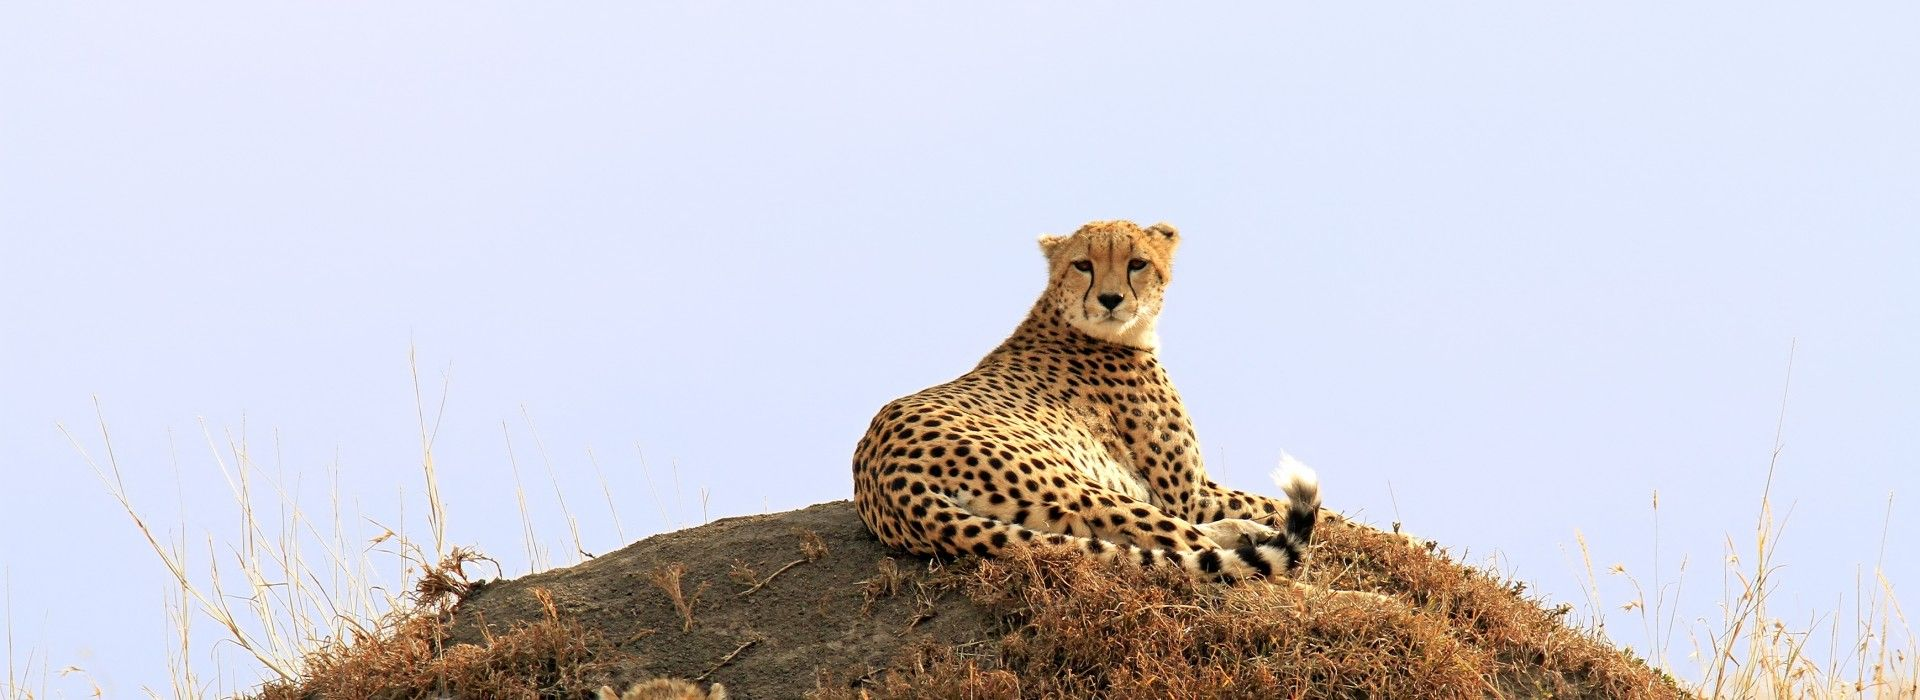 Wildlife safaris and game drives Tours in Maasai Mara National Reserve